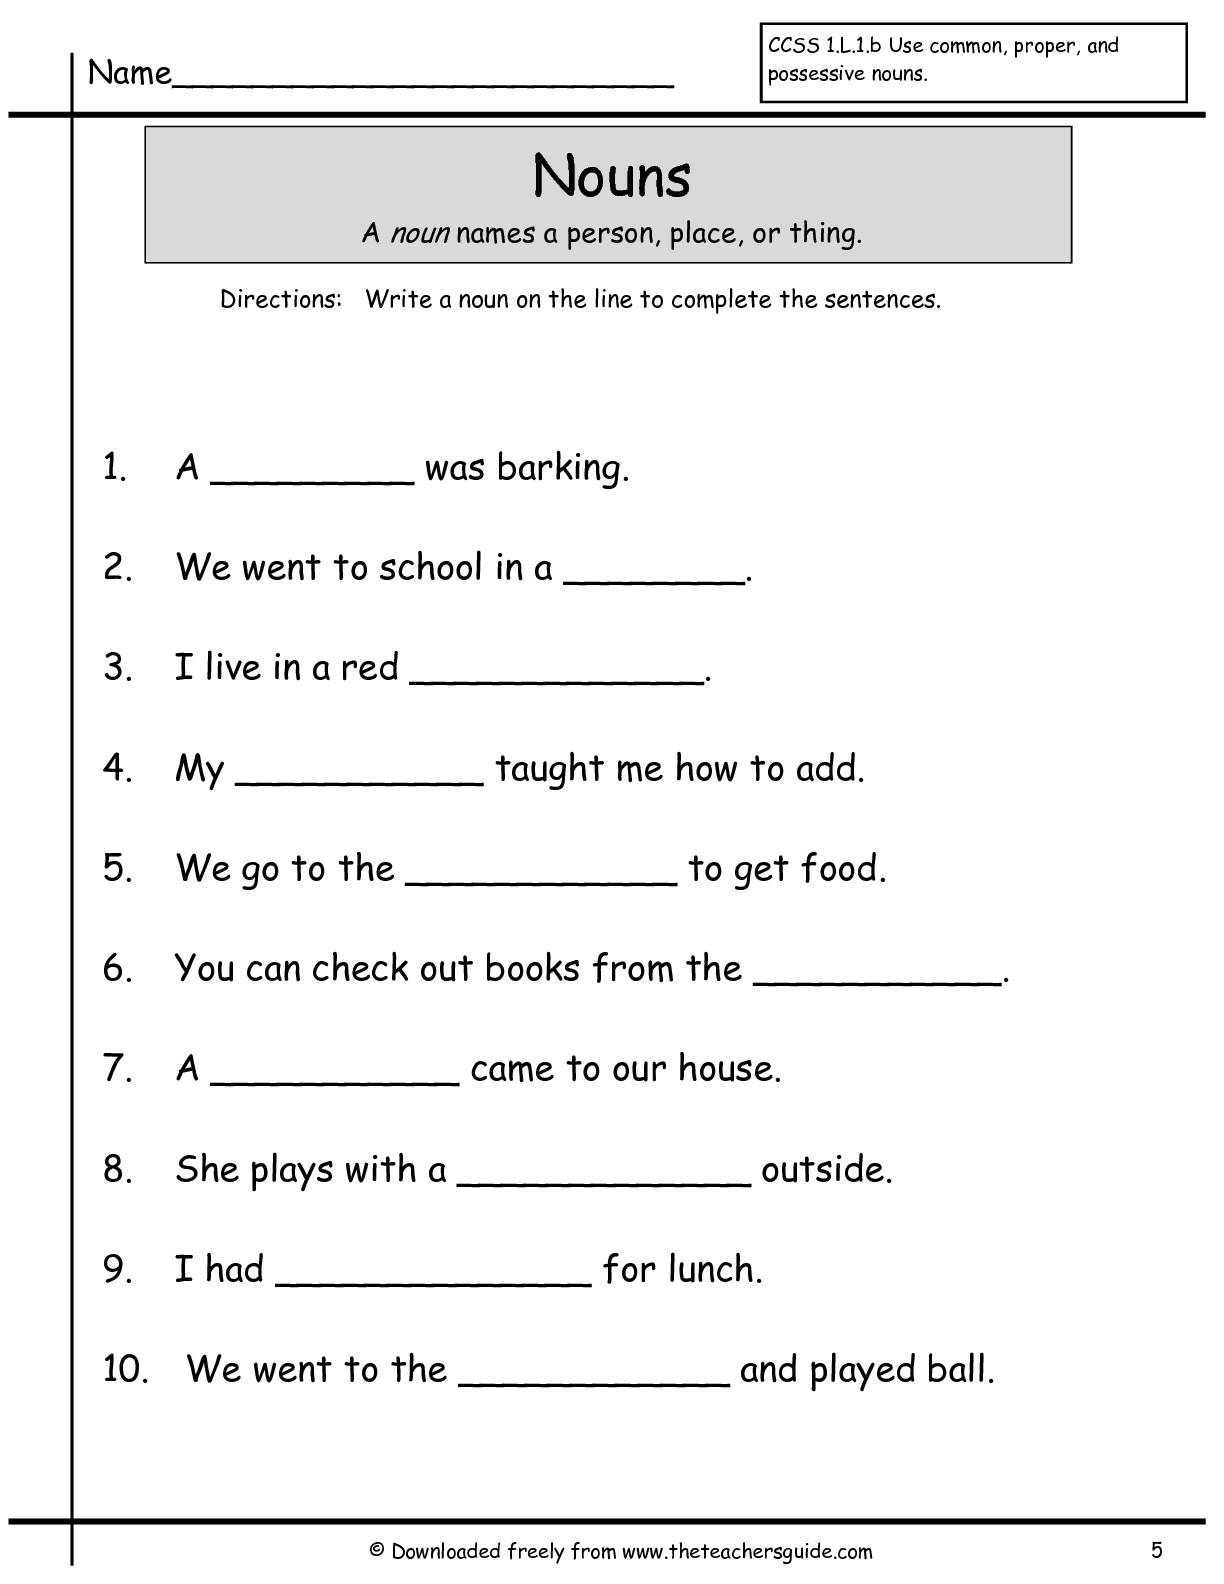 Homework For 1st Grade First Grade Homework Worksheets 02 26